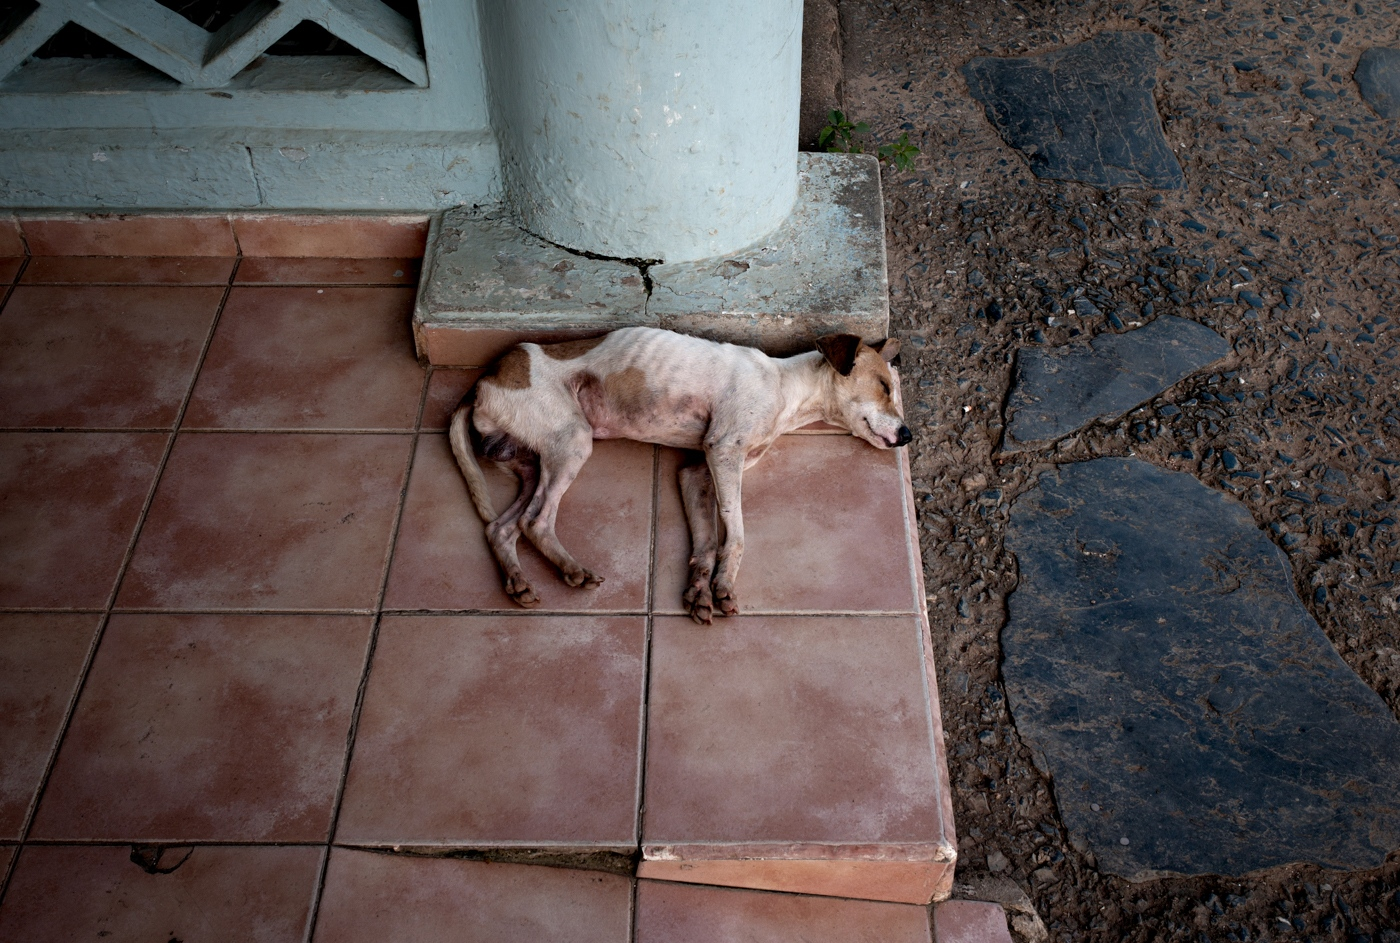 Stray dogs and cats are everywhere in Havana and Vinales (a farming village two hours drive from Havana). They live peacefully among the population and survive on the kindness of strangers.